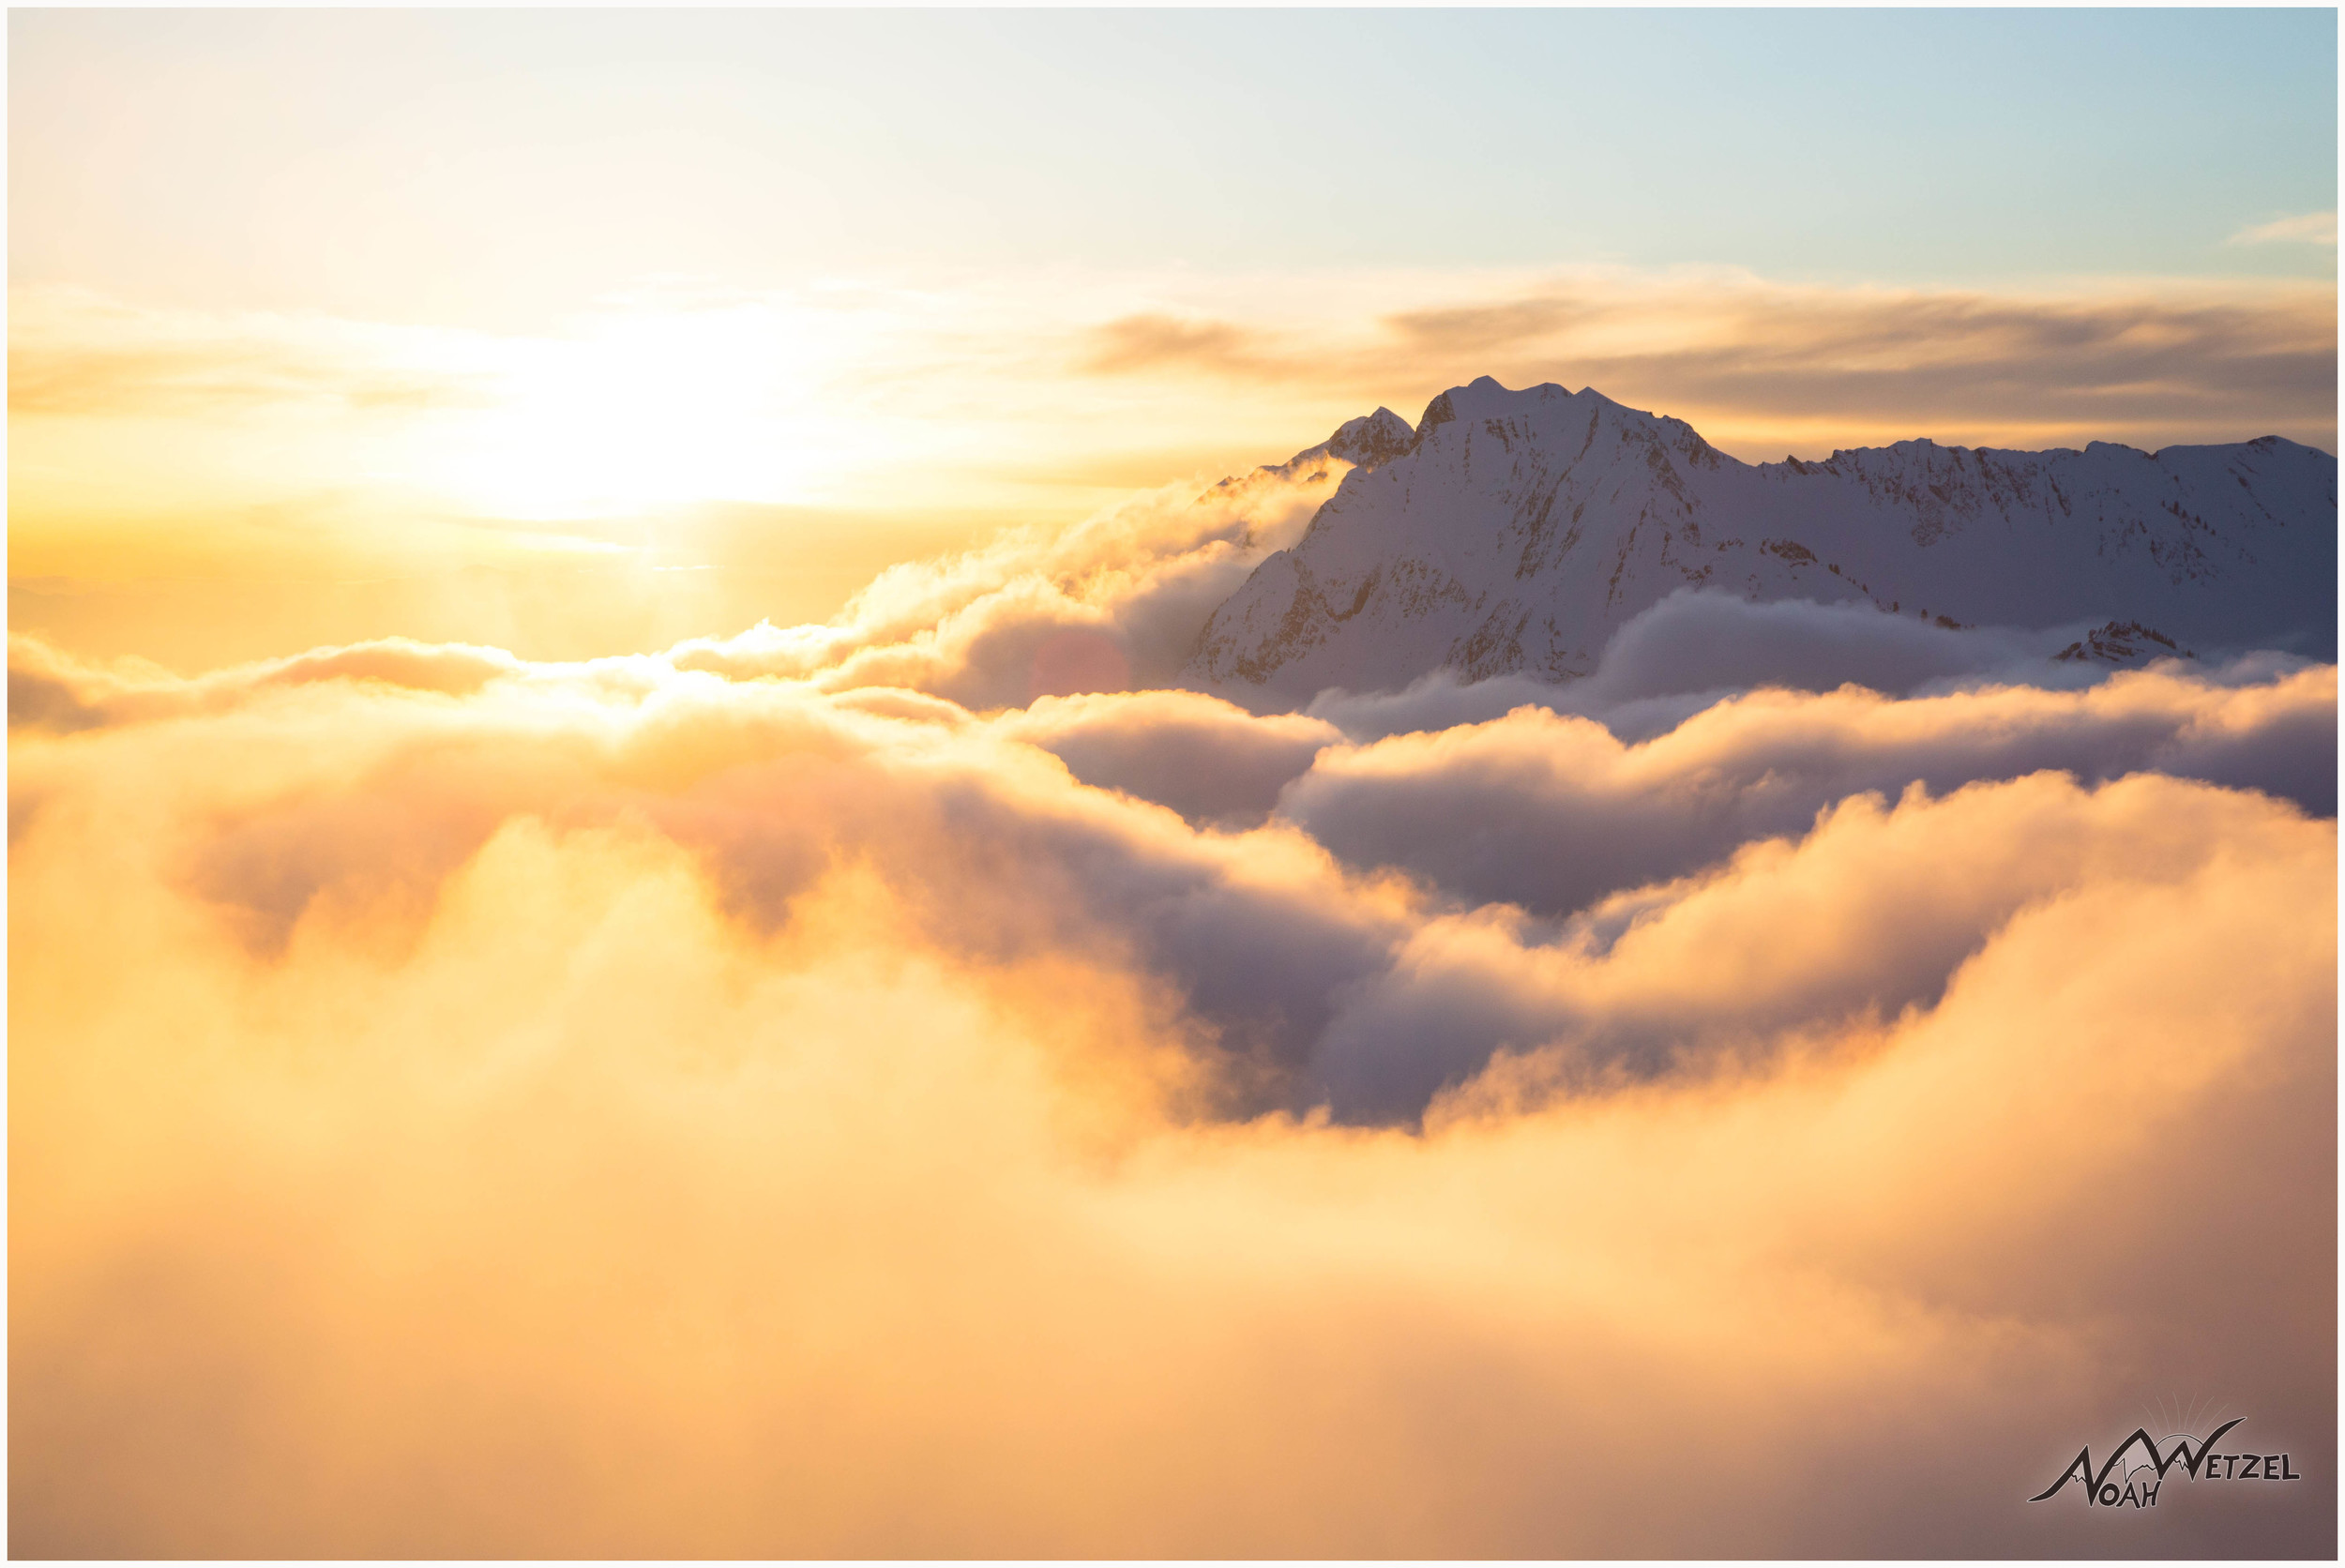 Mt. Superior floats amongst a sea of clouds in a truly surreal sunset in Little Cottonwood Canyon, Utah.